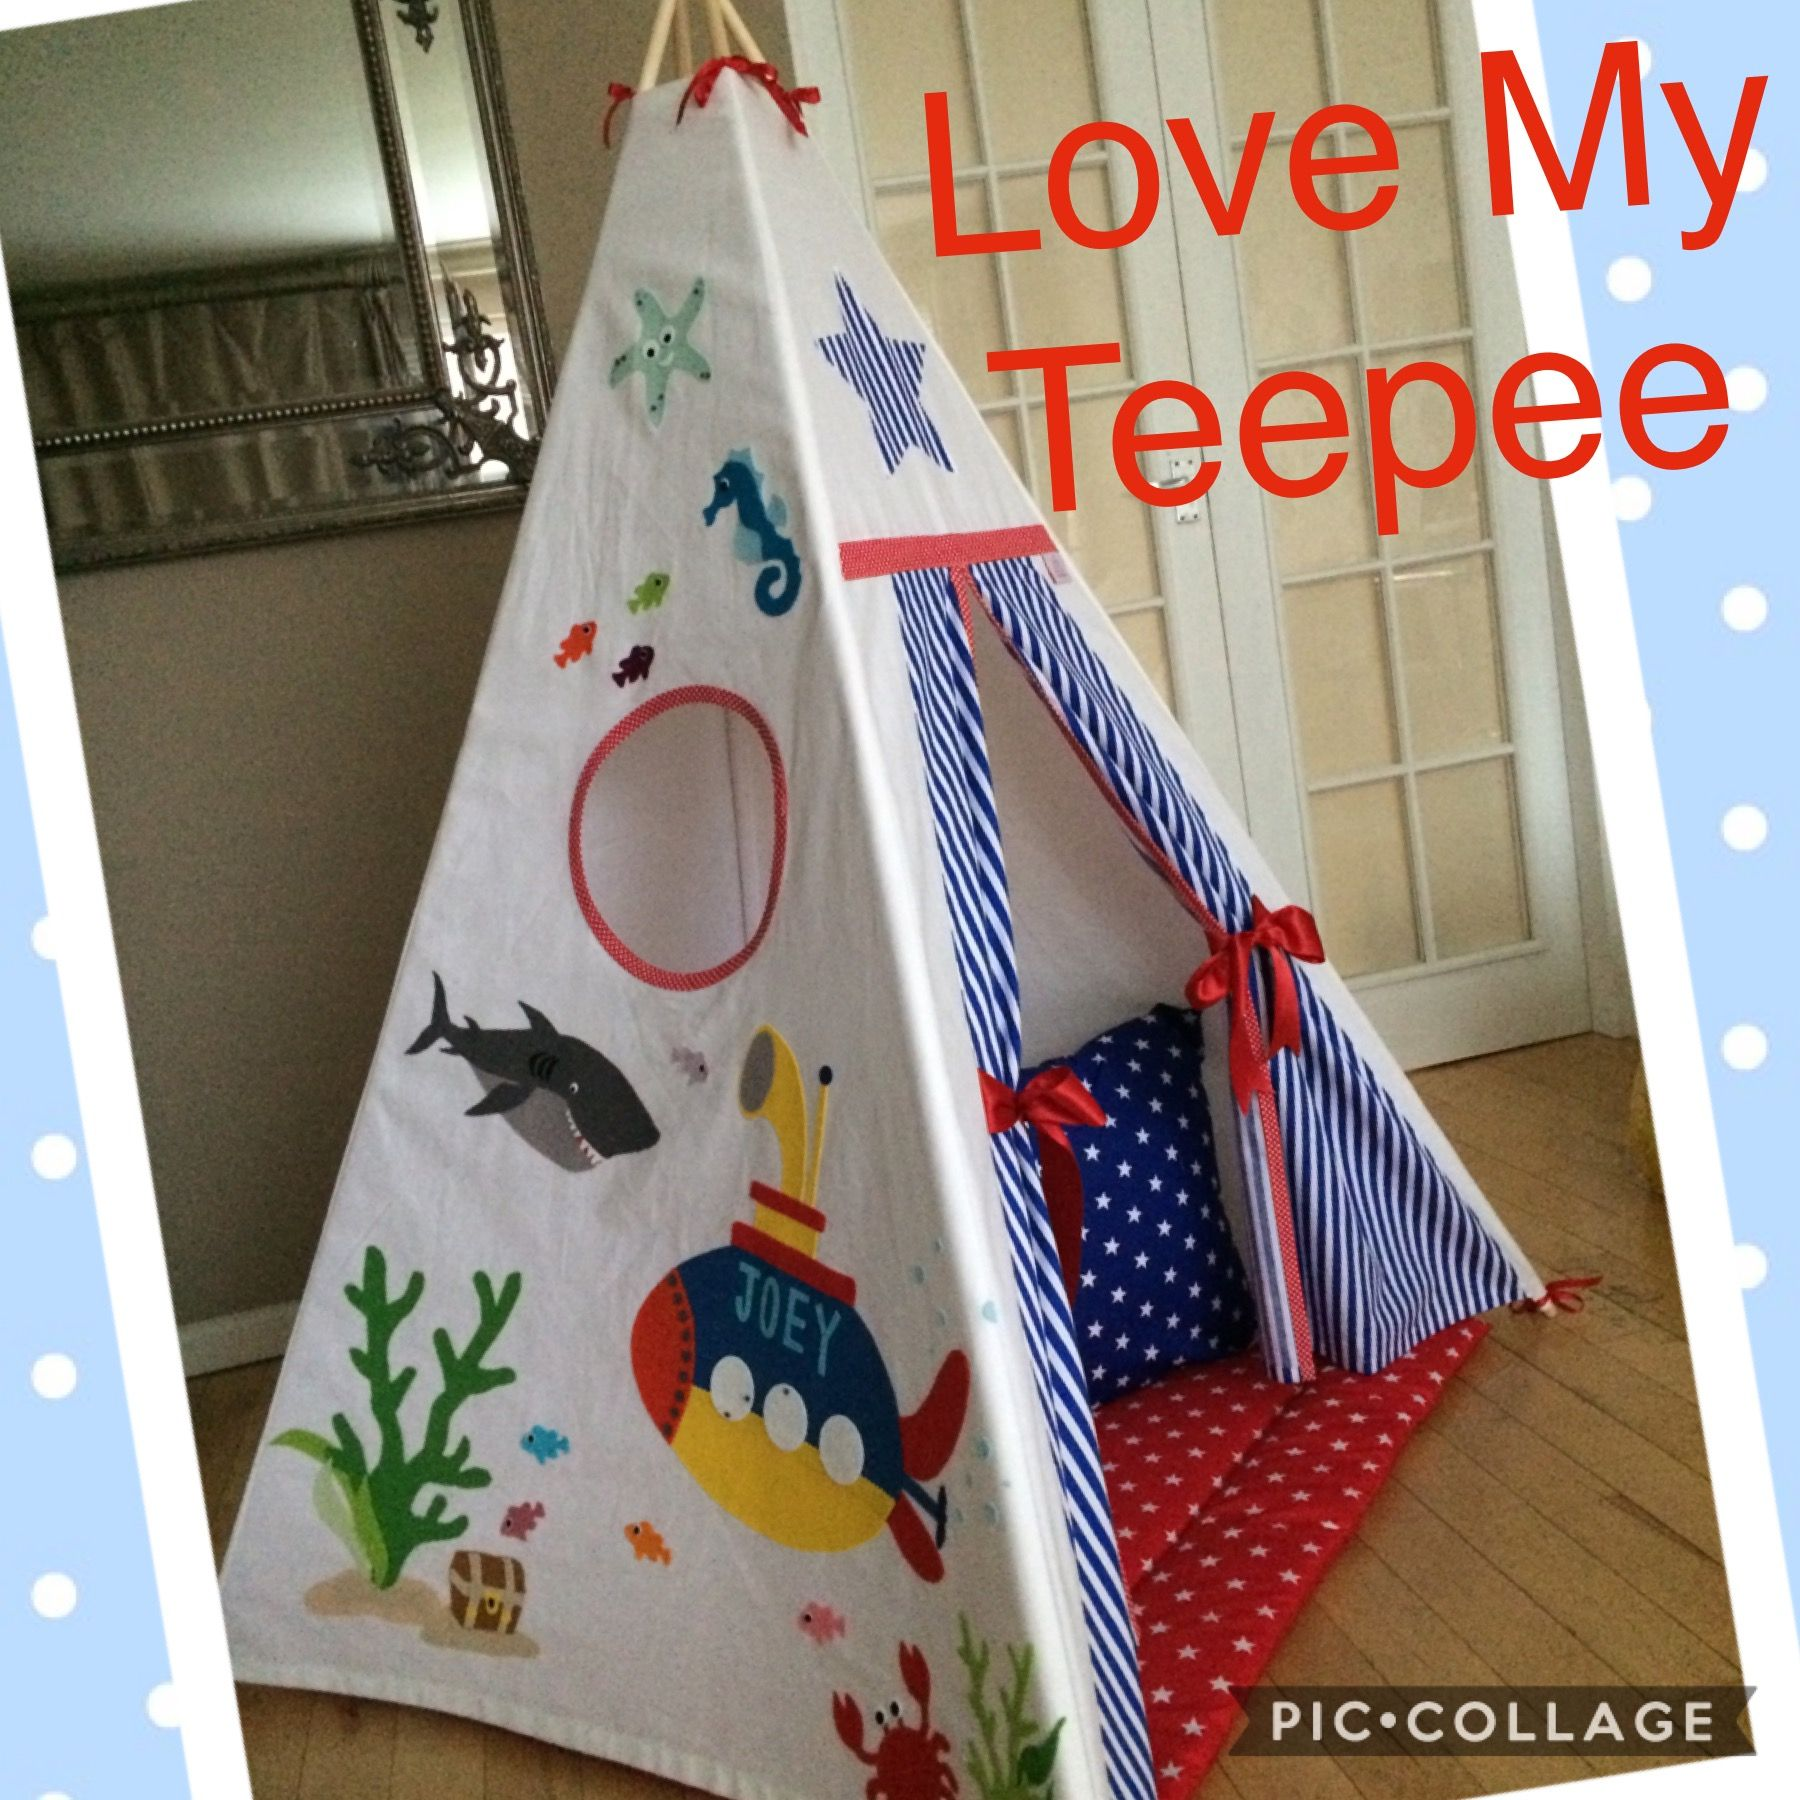 Love my teepee uku0027s leading handmade bespoke and personalised childrens teepee tents. Toys cushions play mats for boys and girls.  sc 1 st  Pinterest & Shark u0026 Submerine personalised teepee set | Peekaboo Teepees 0 ...